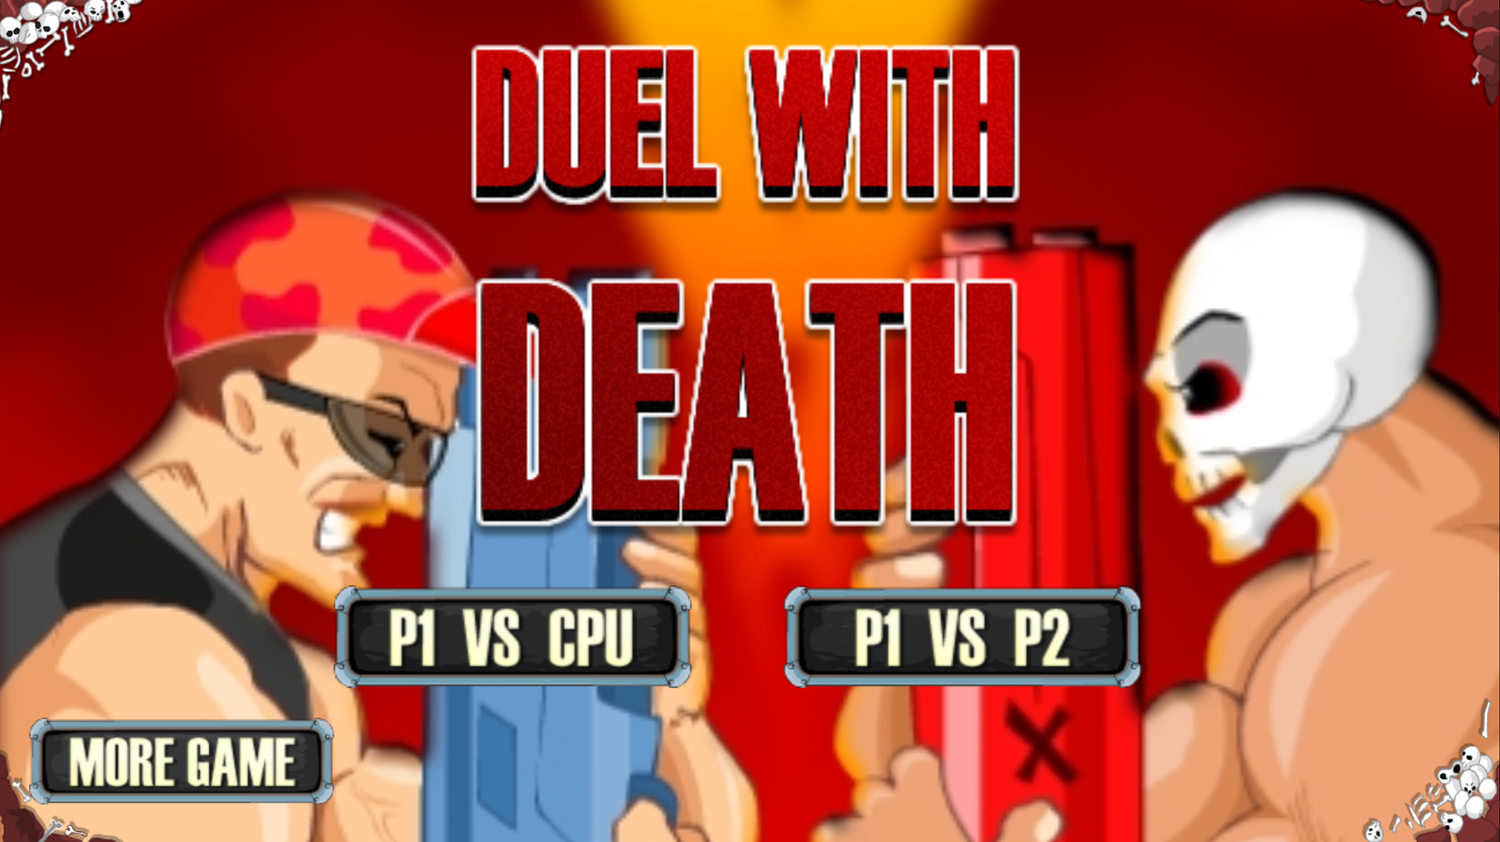 Dual With Death Game Welcome Screen Screenshot.